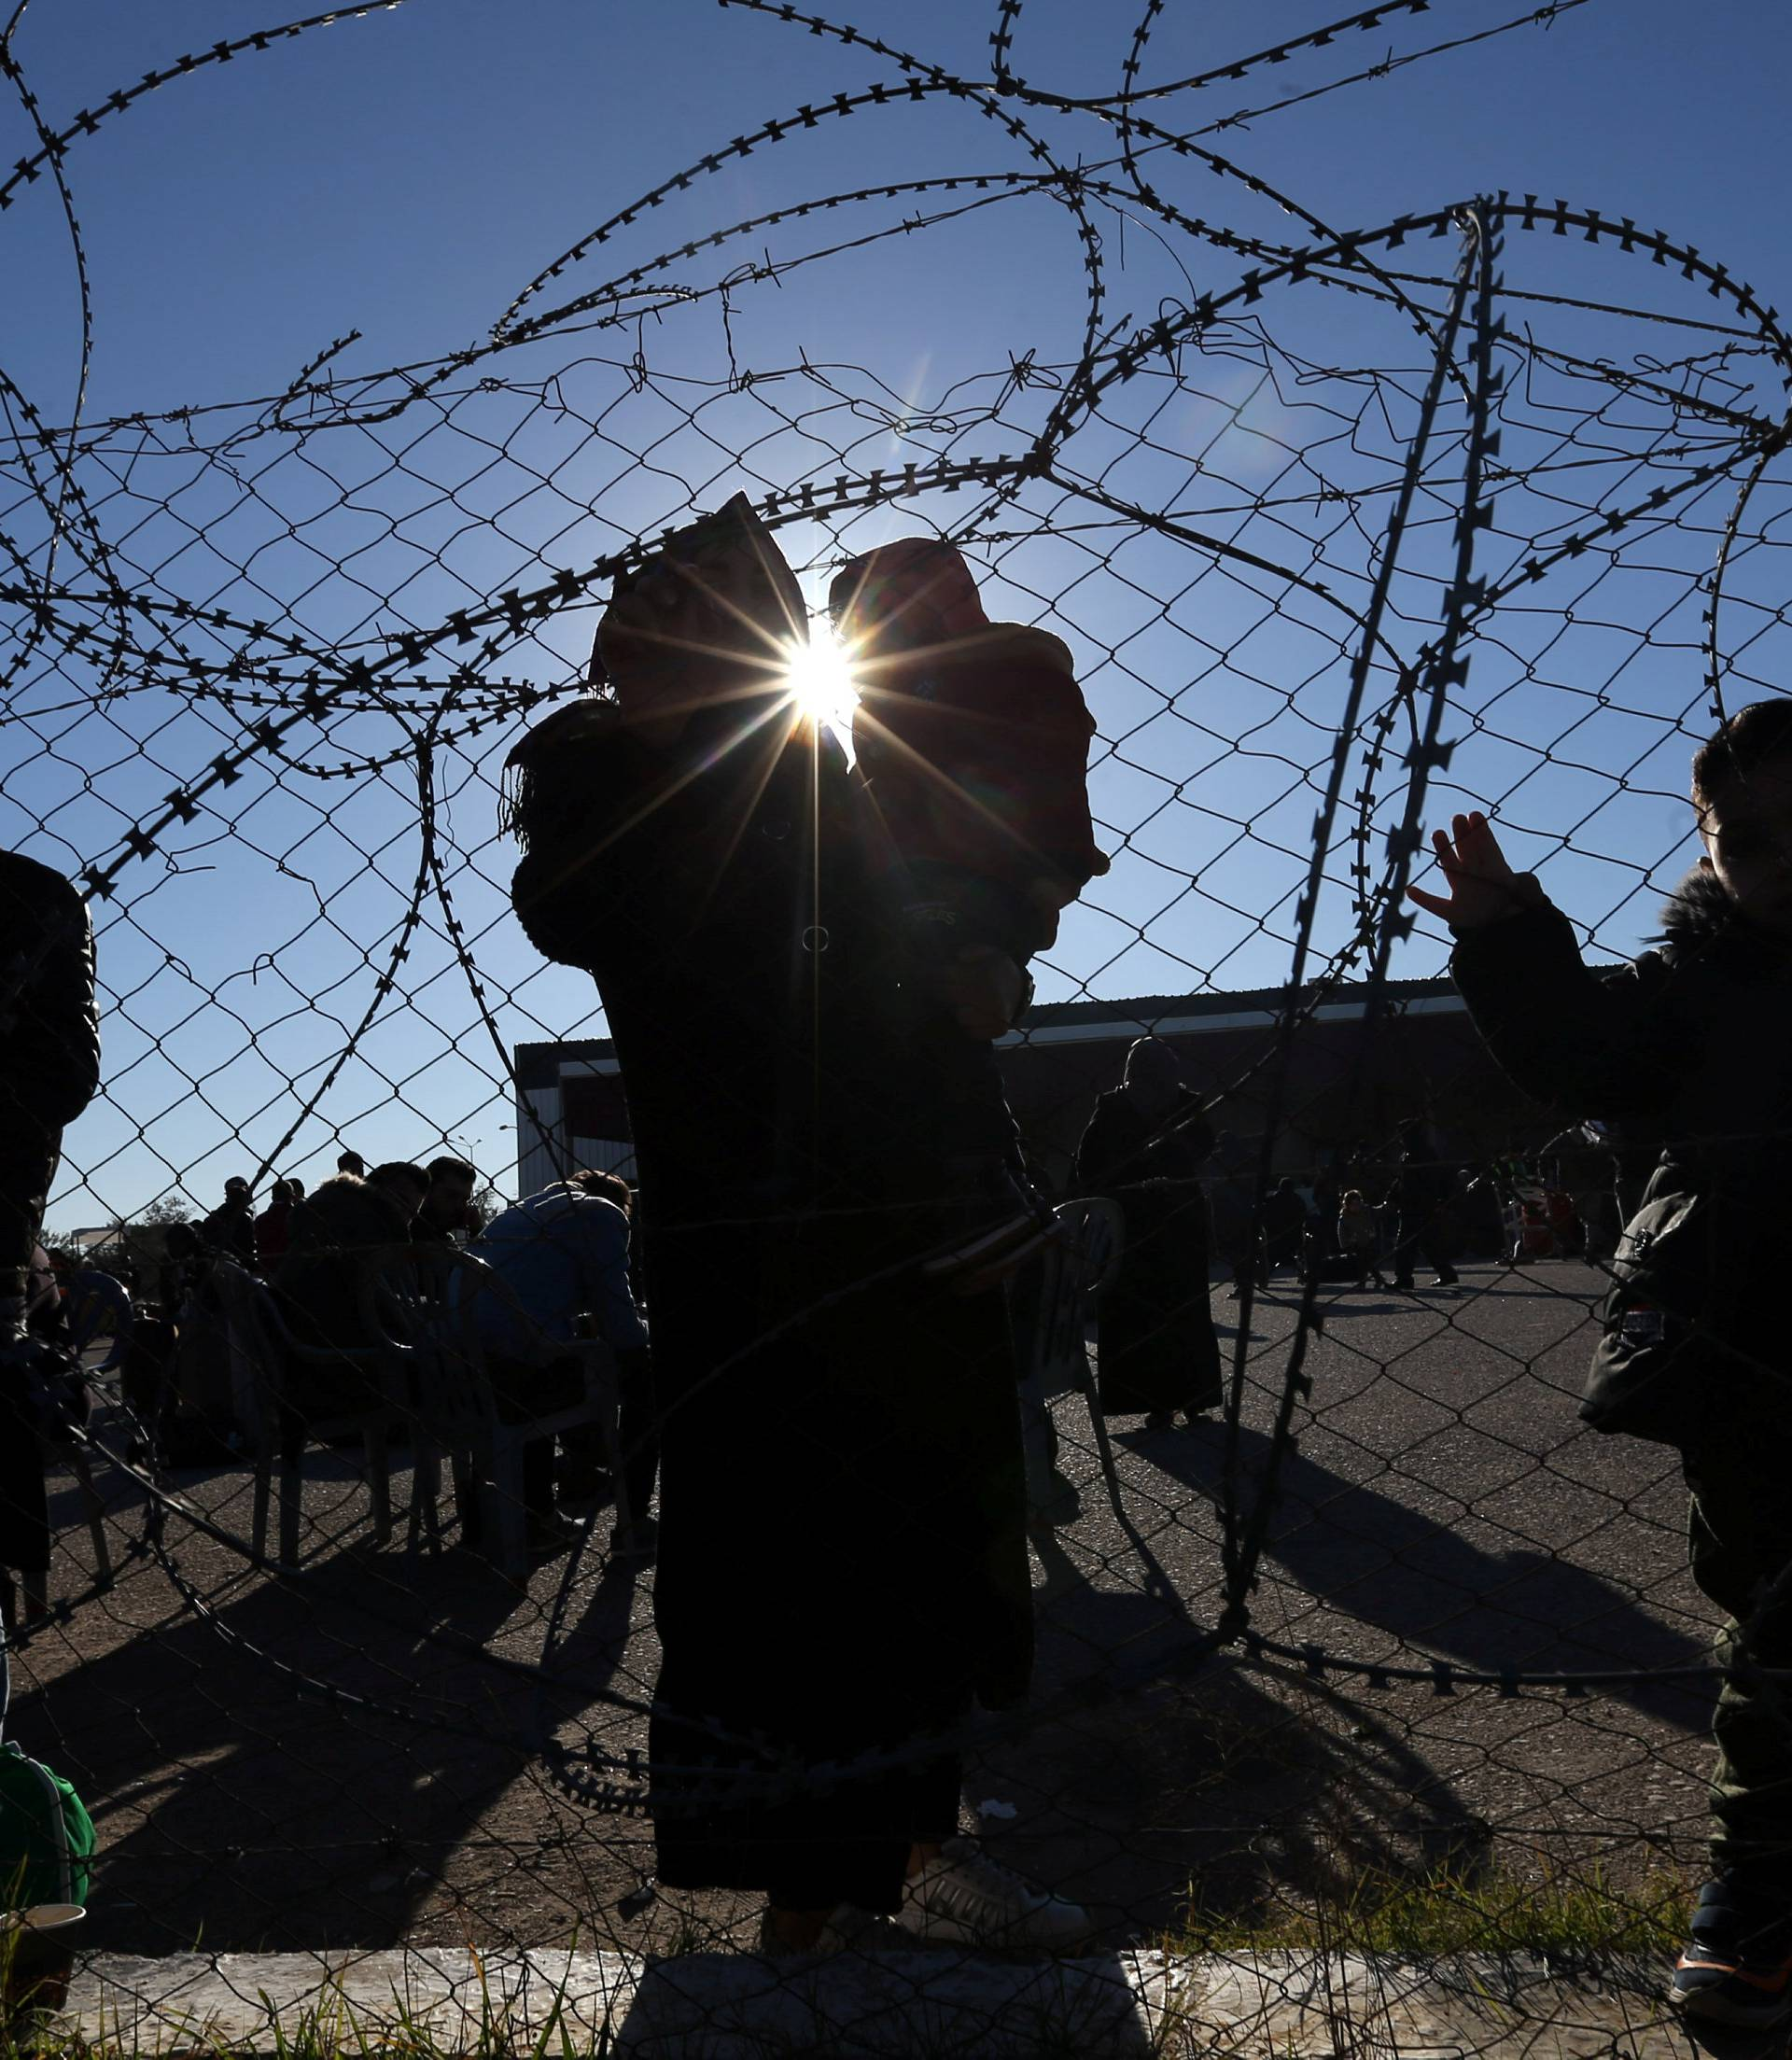 Palestinians stand by a fence as they wait for travel permits to leave Gaza through Rafah border crossing with Egypt, in Rafah, in the southern Gaza Strip